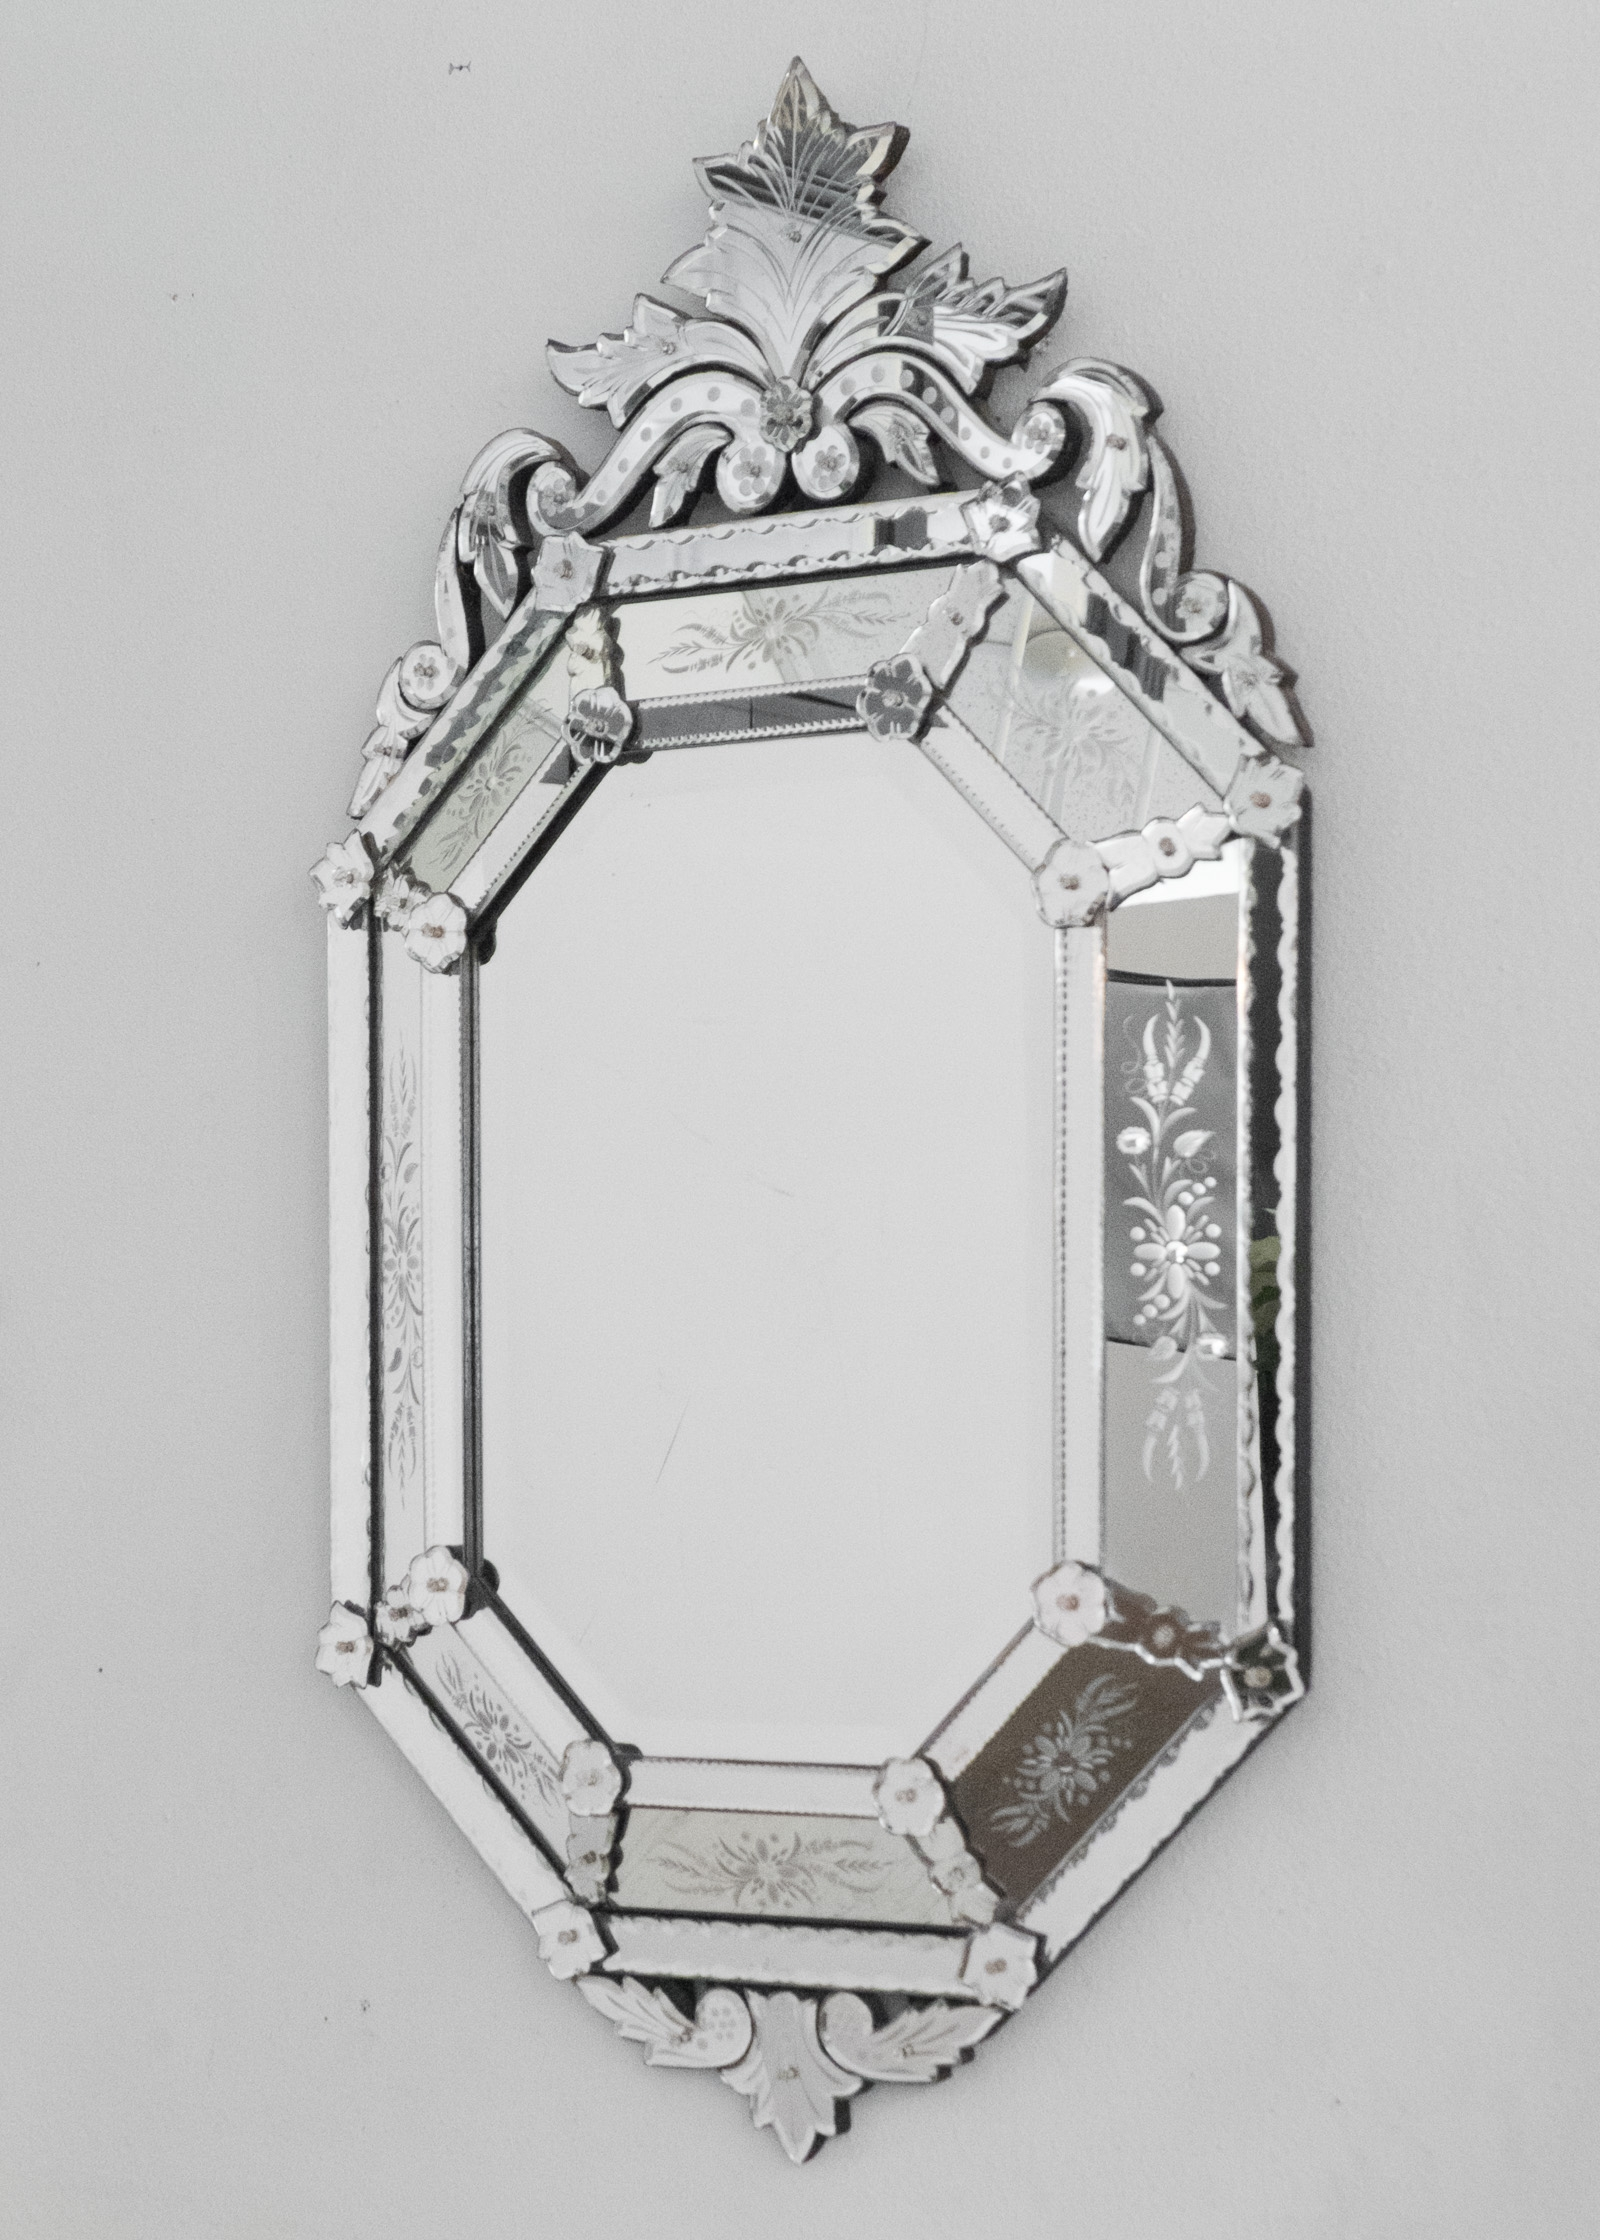 Antique Venetian Glass Mirror Jean Marc Fray Within Venetian Etched Glass Mirror (Image 2 of 15)